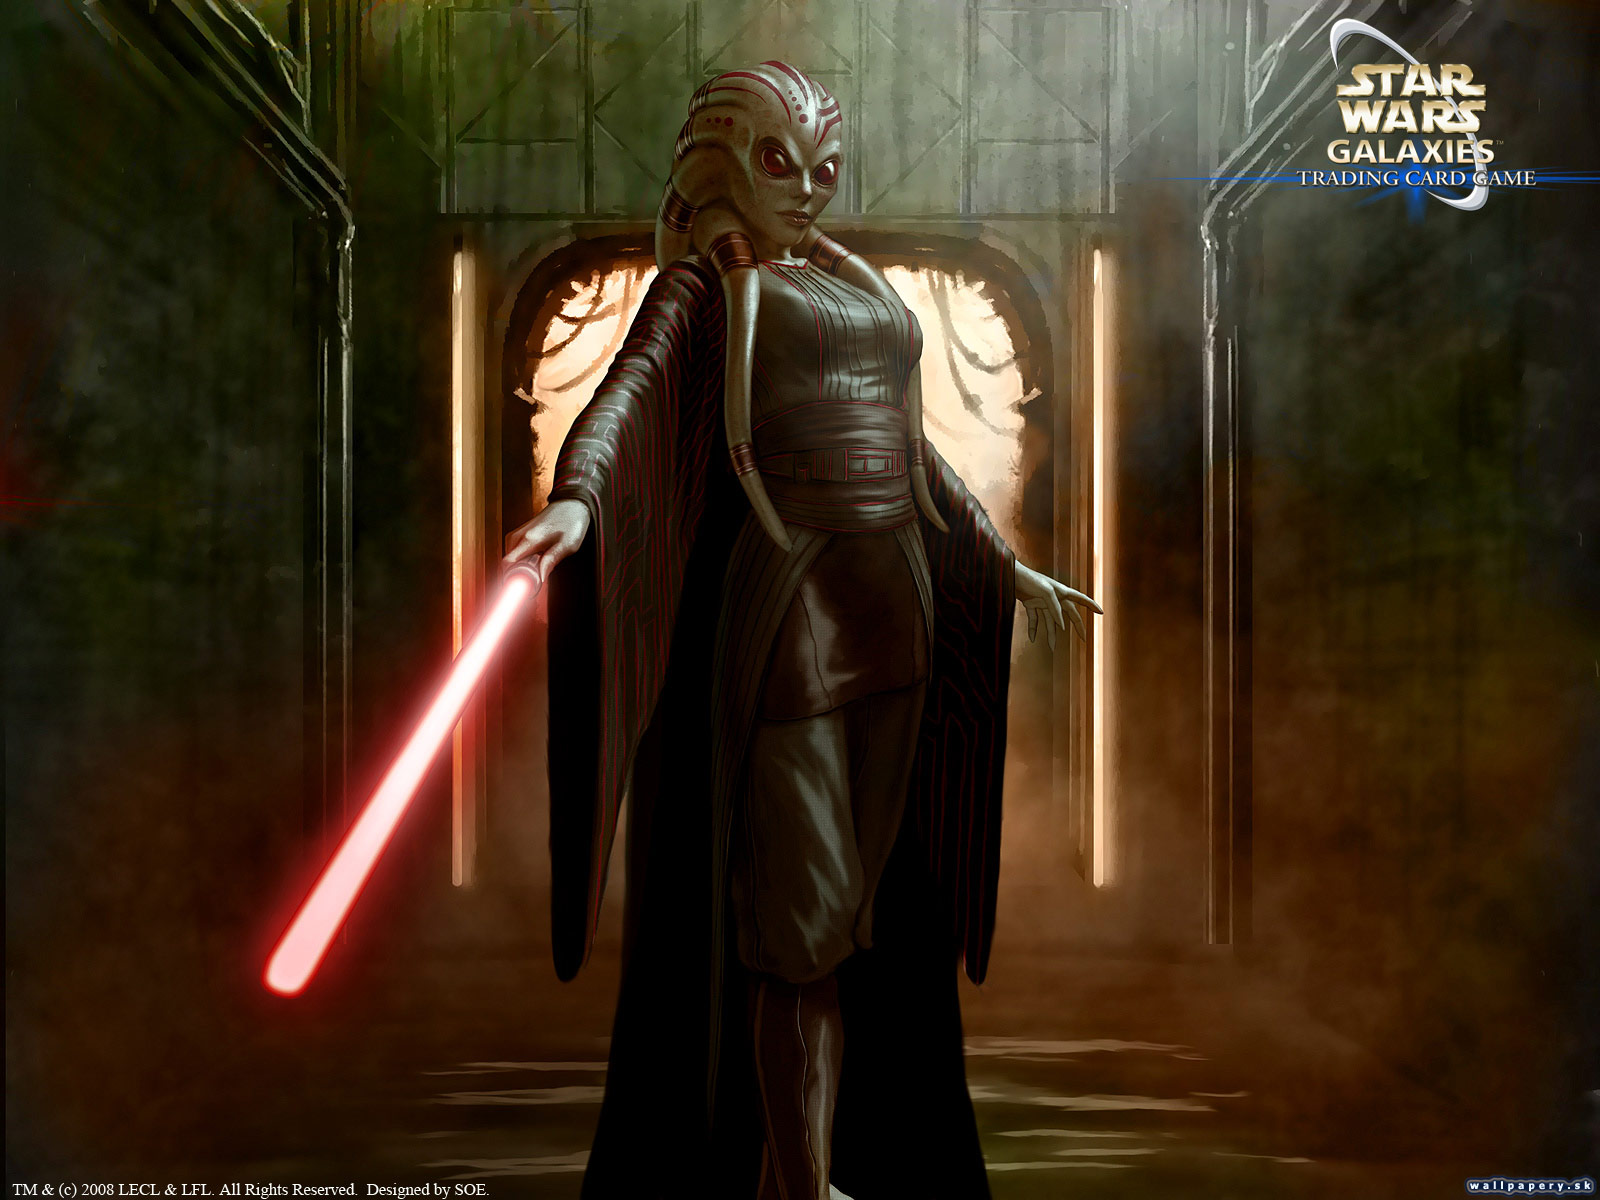 Star Wars Galaxies Trading Card Game Champions Of The Force Wallpaper 9 Abcgames Cz